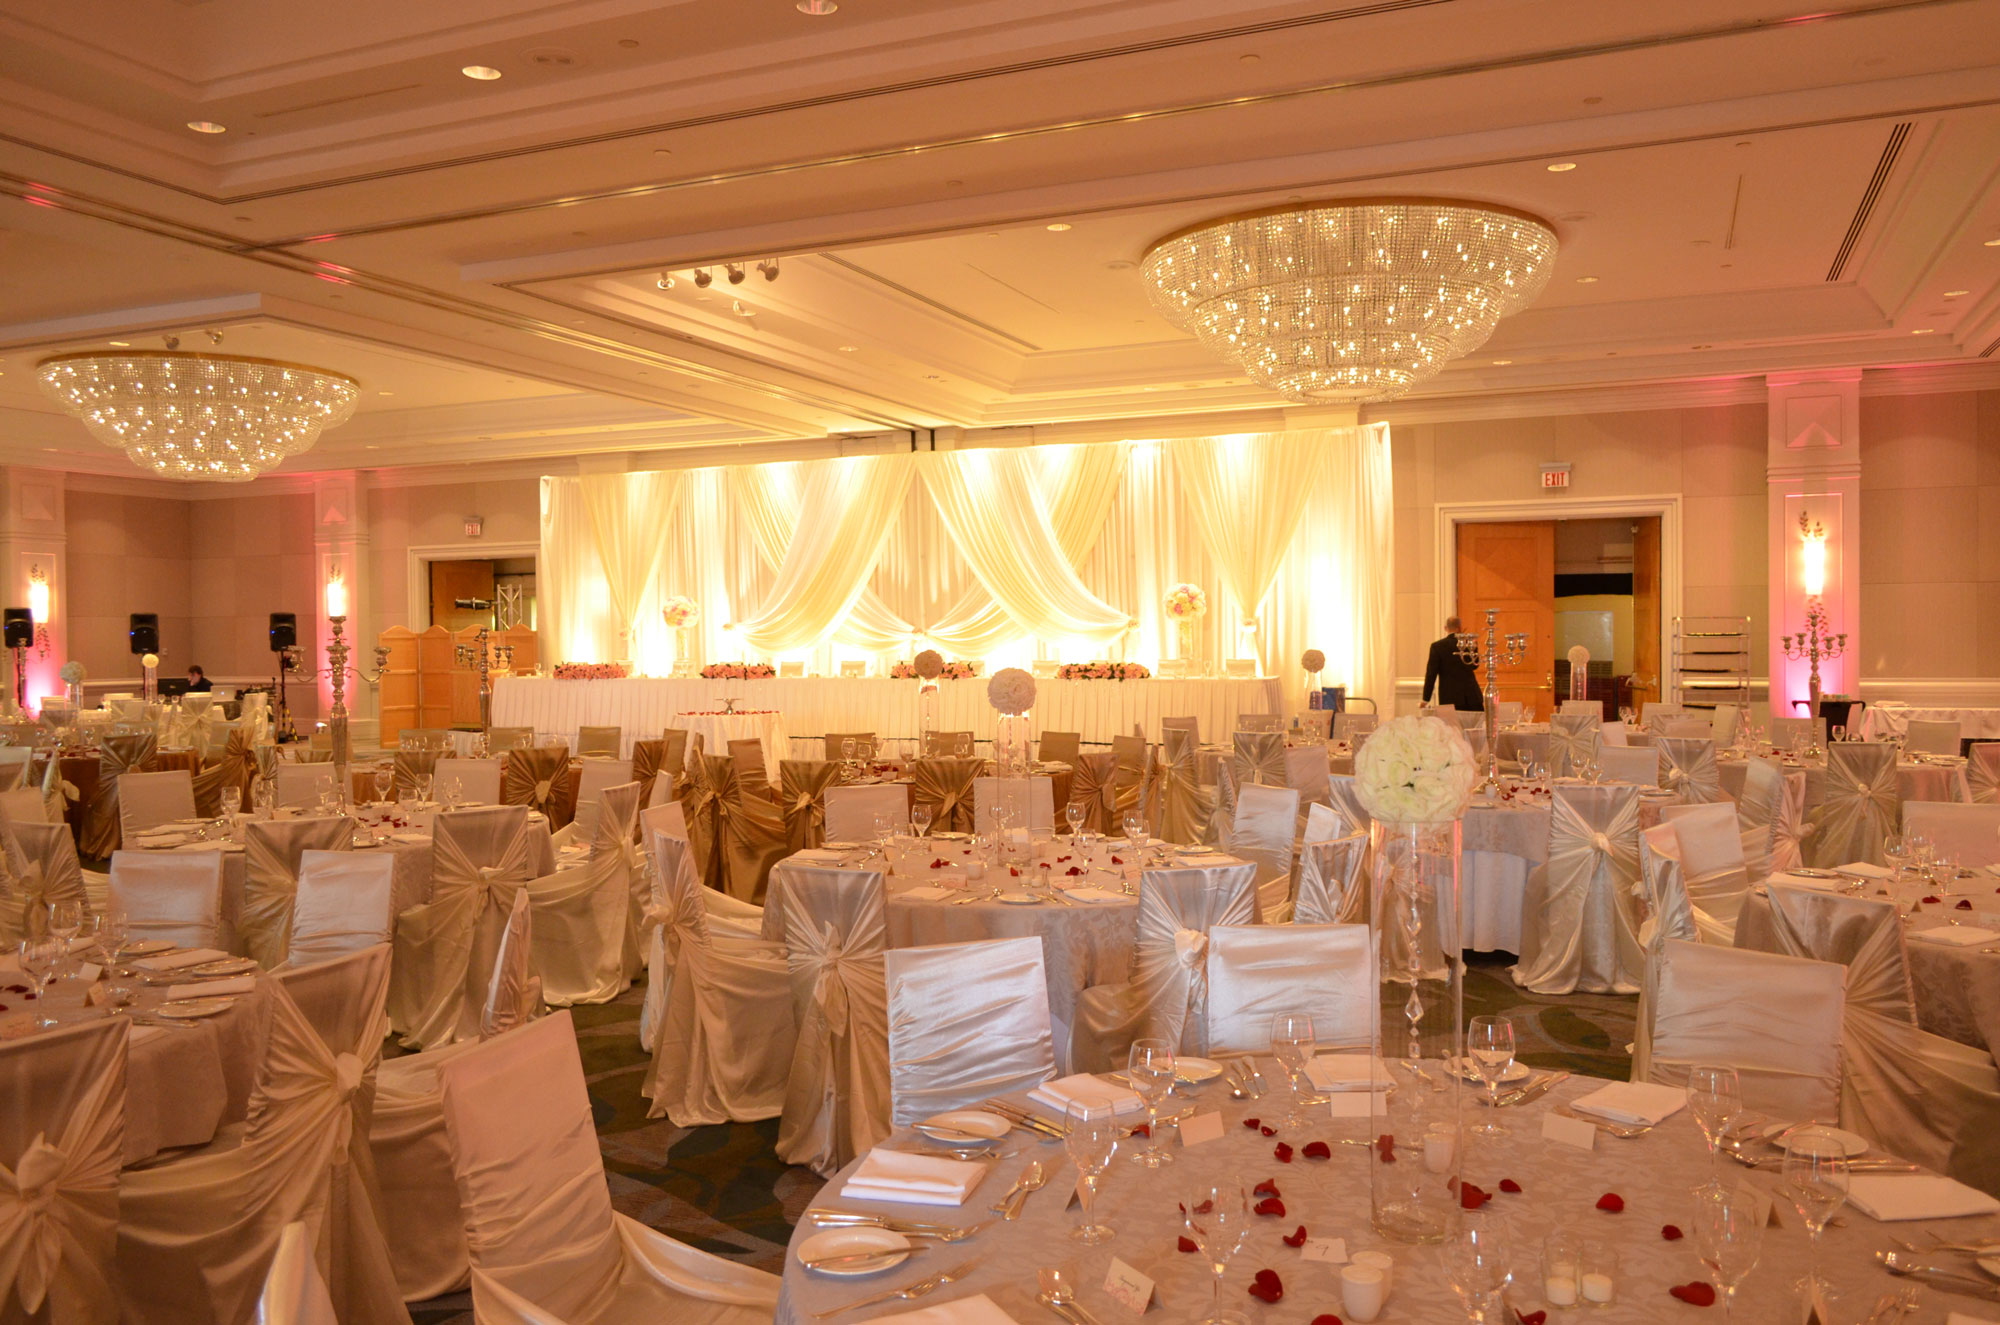 Vancouver Fairmont Waterfront - wedding decor decorations - Head Table - Backdrop - uplighting - chair covers